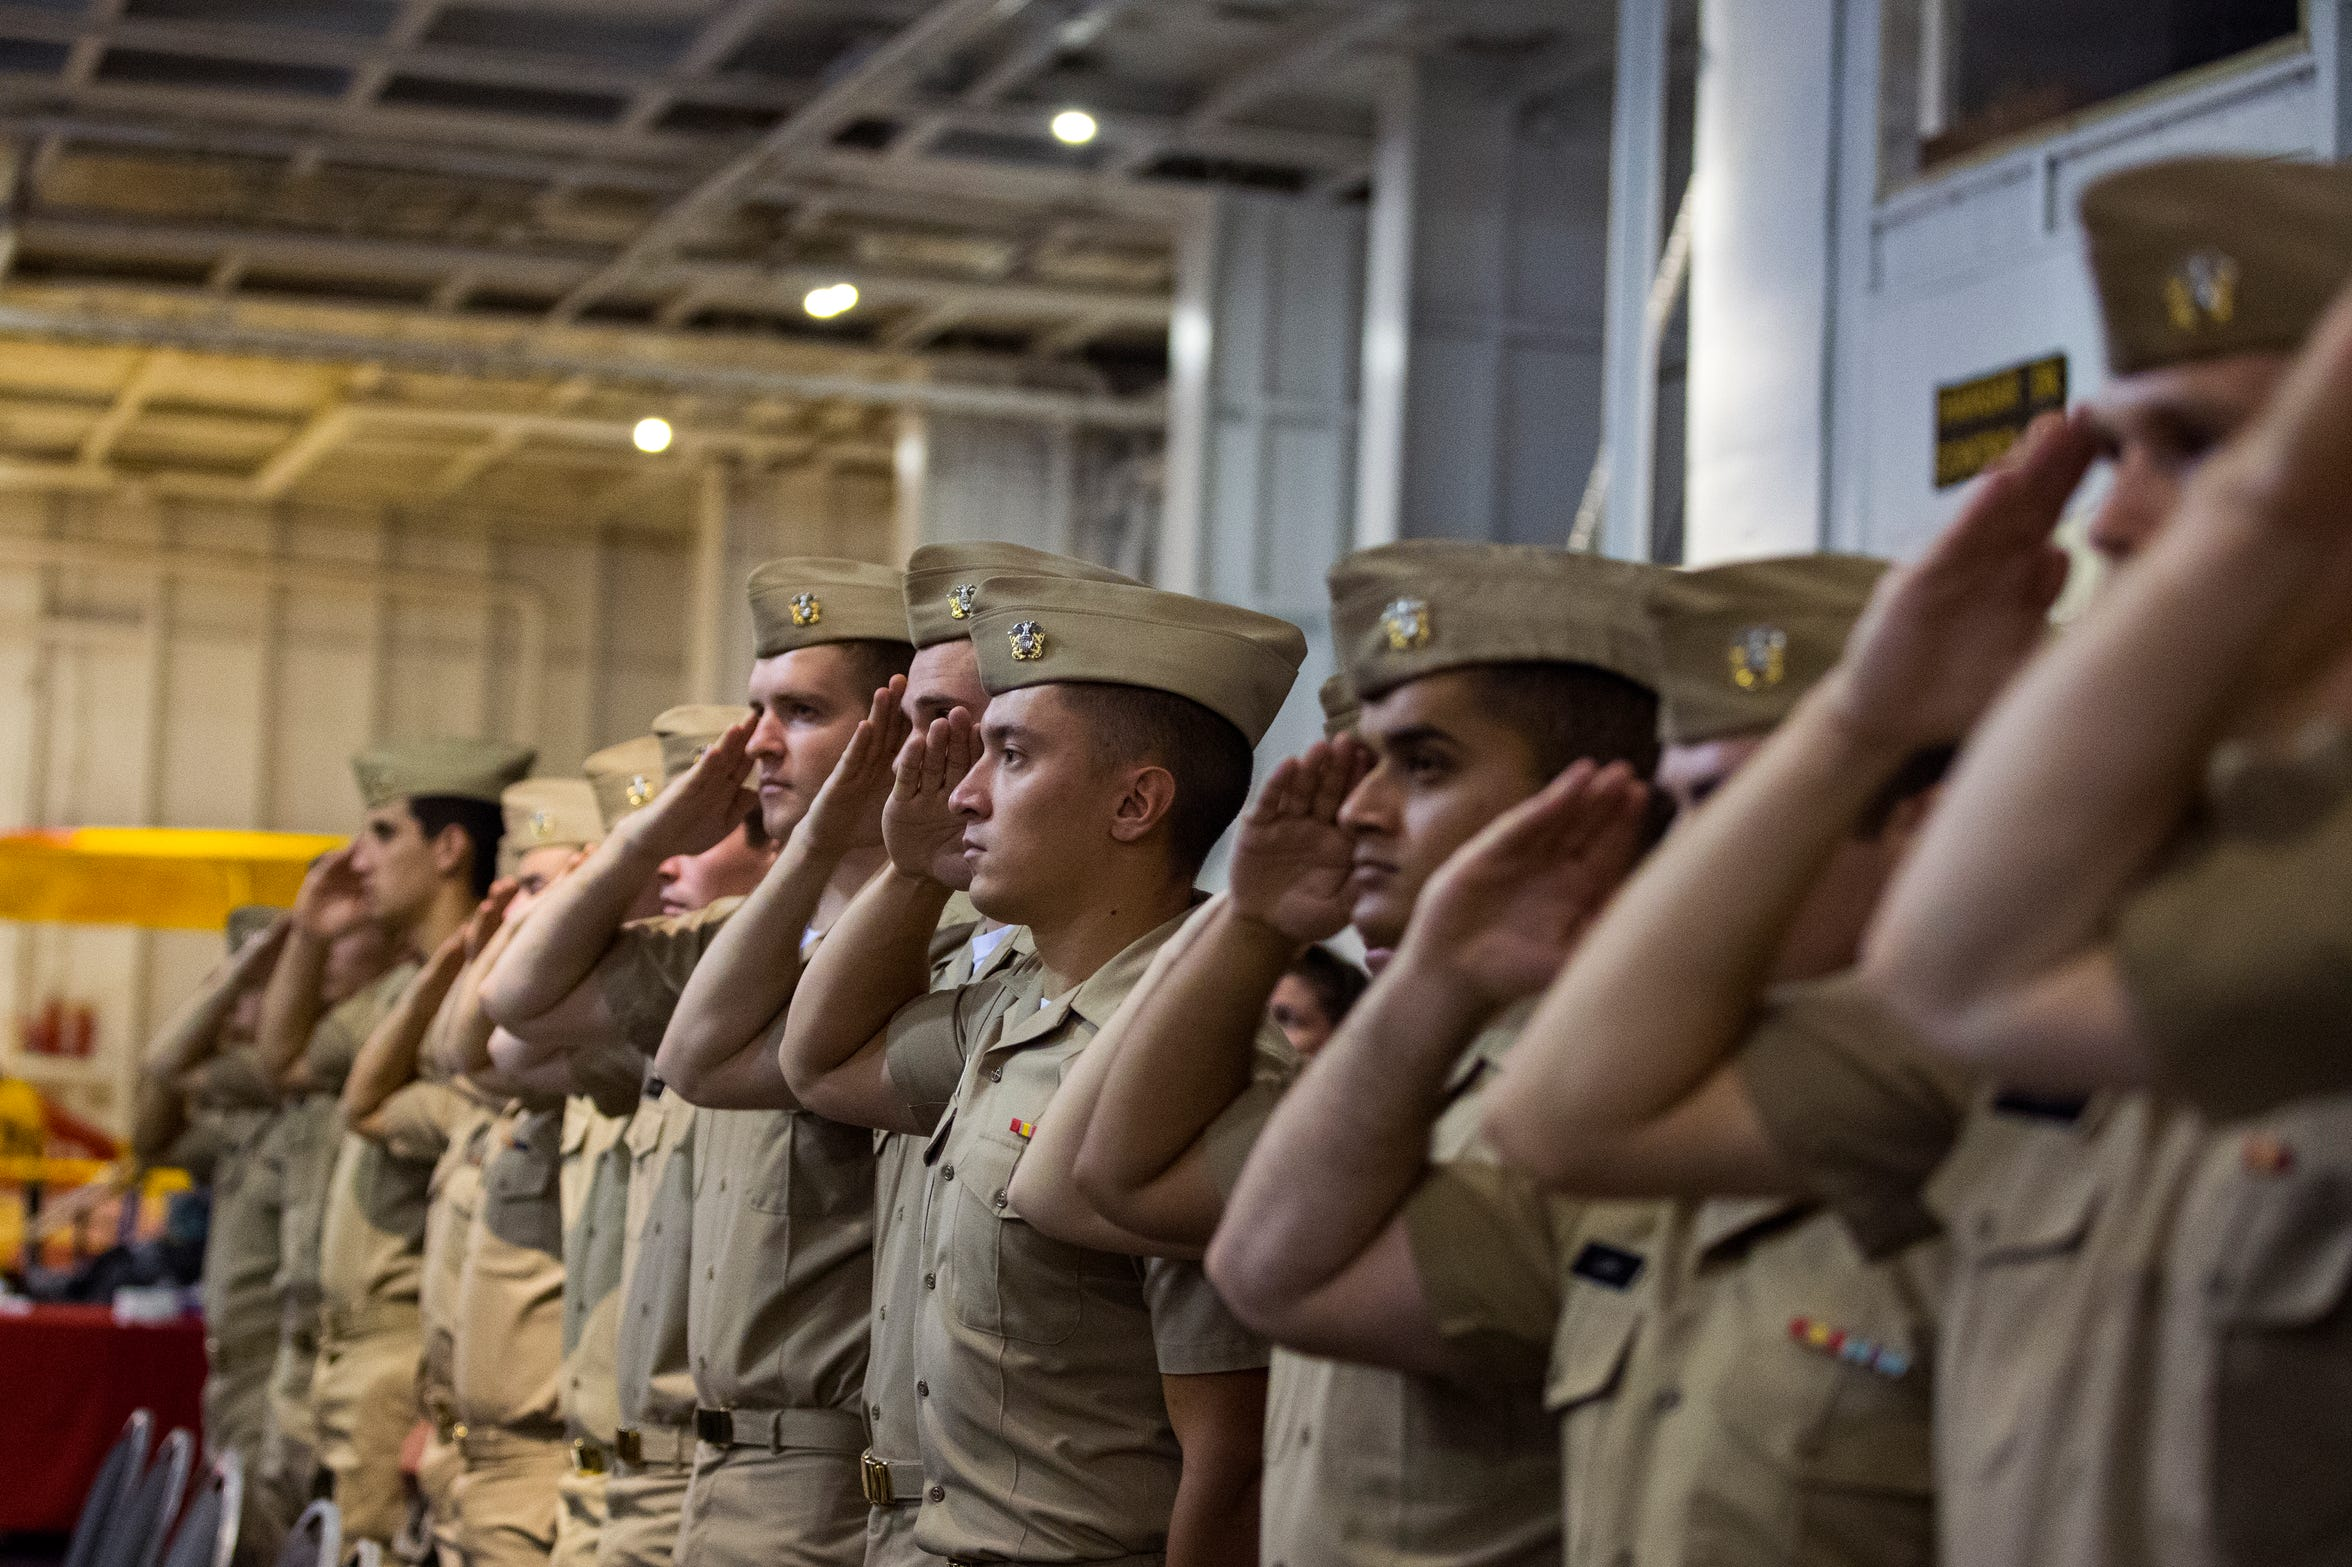 Military personnel salute during the National Anthem at the the Commemoration of the Battle of Midway and of D-Day at the USS Lexington Museum on the Bay in Corpus Christi.